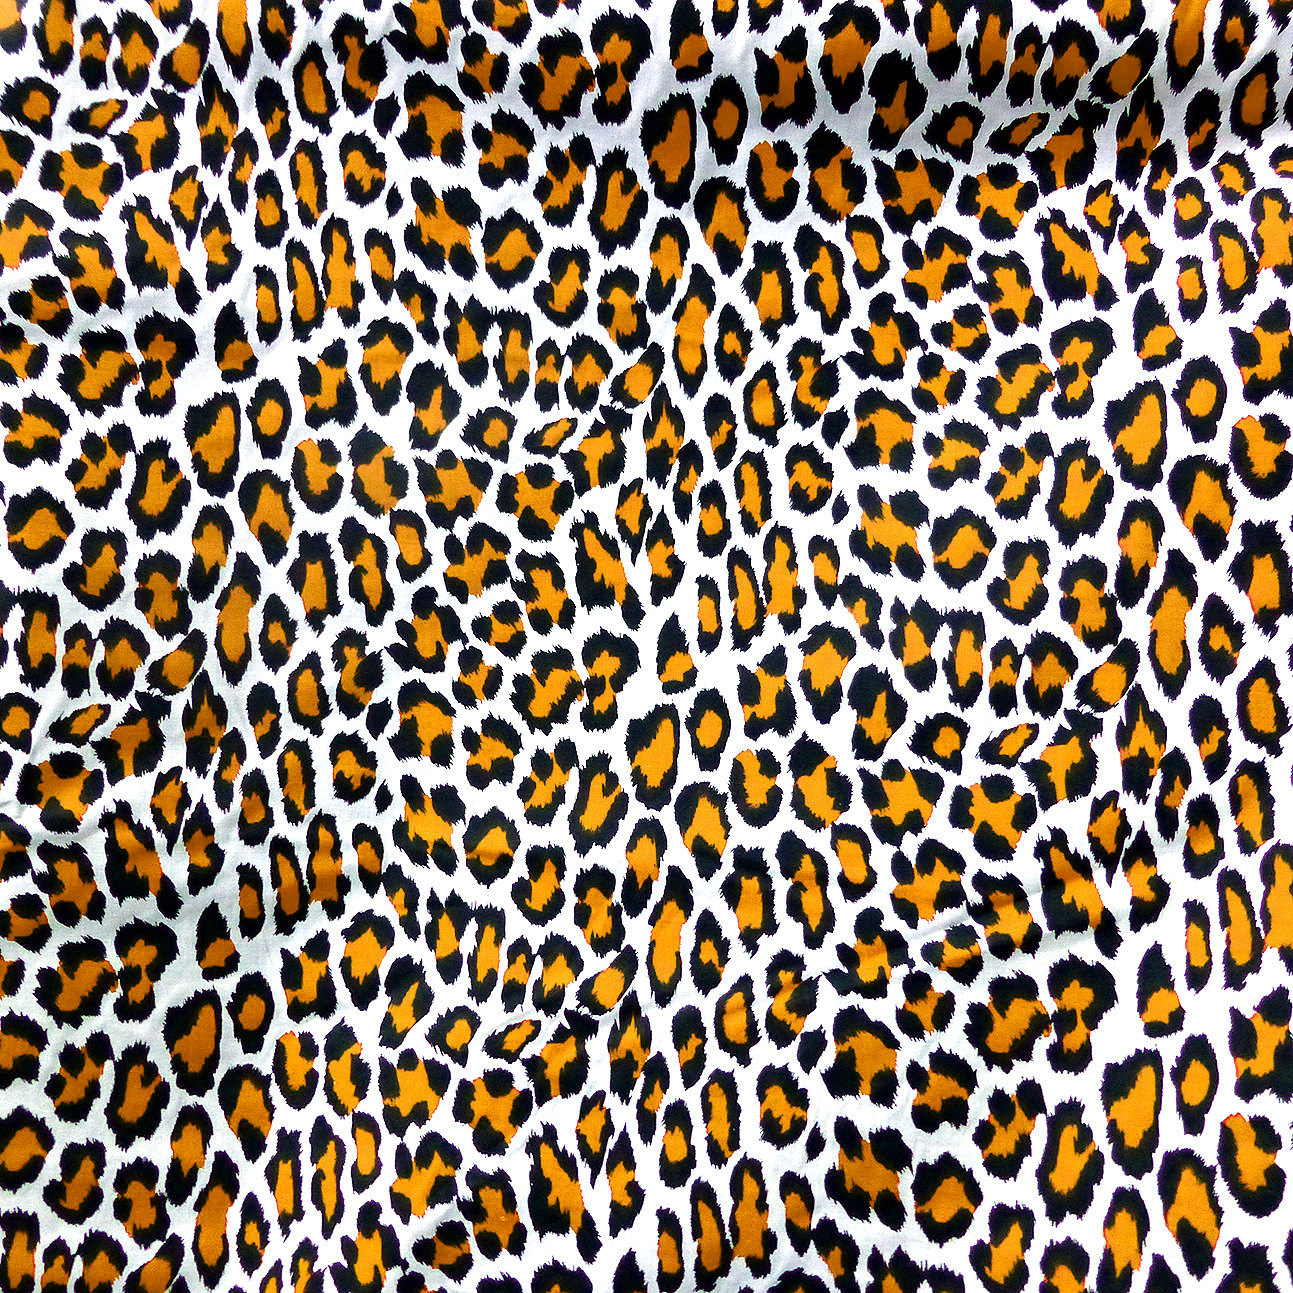 Leopard Print Fabric animal print fabric leopard print fabric pure cotton quilting